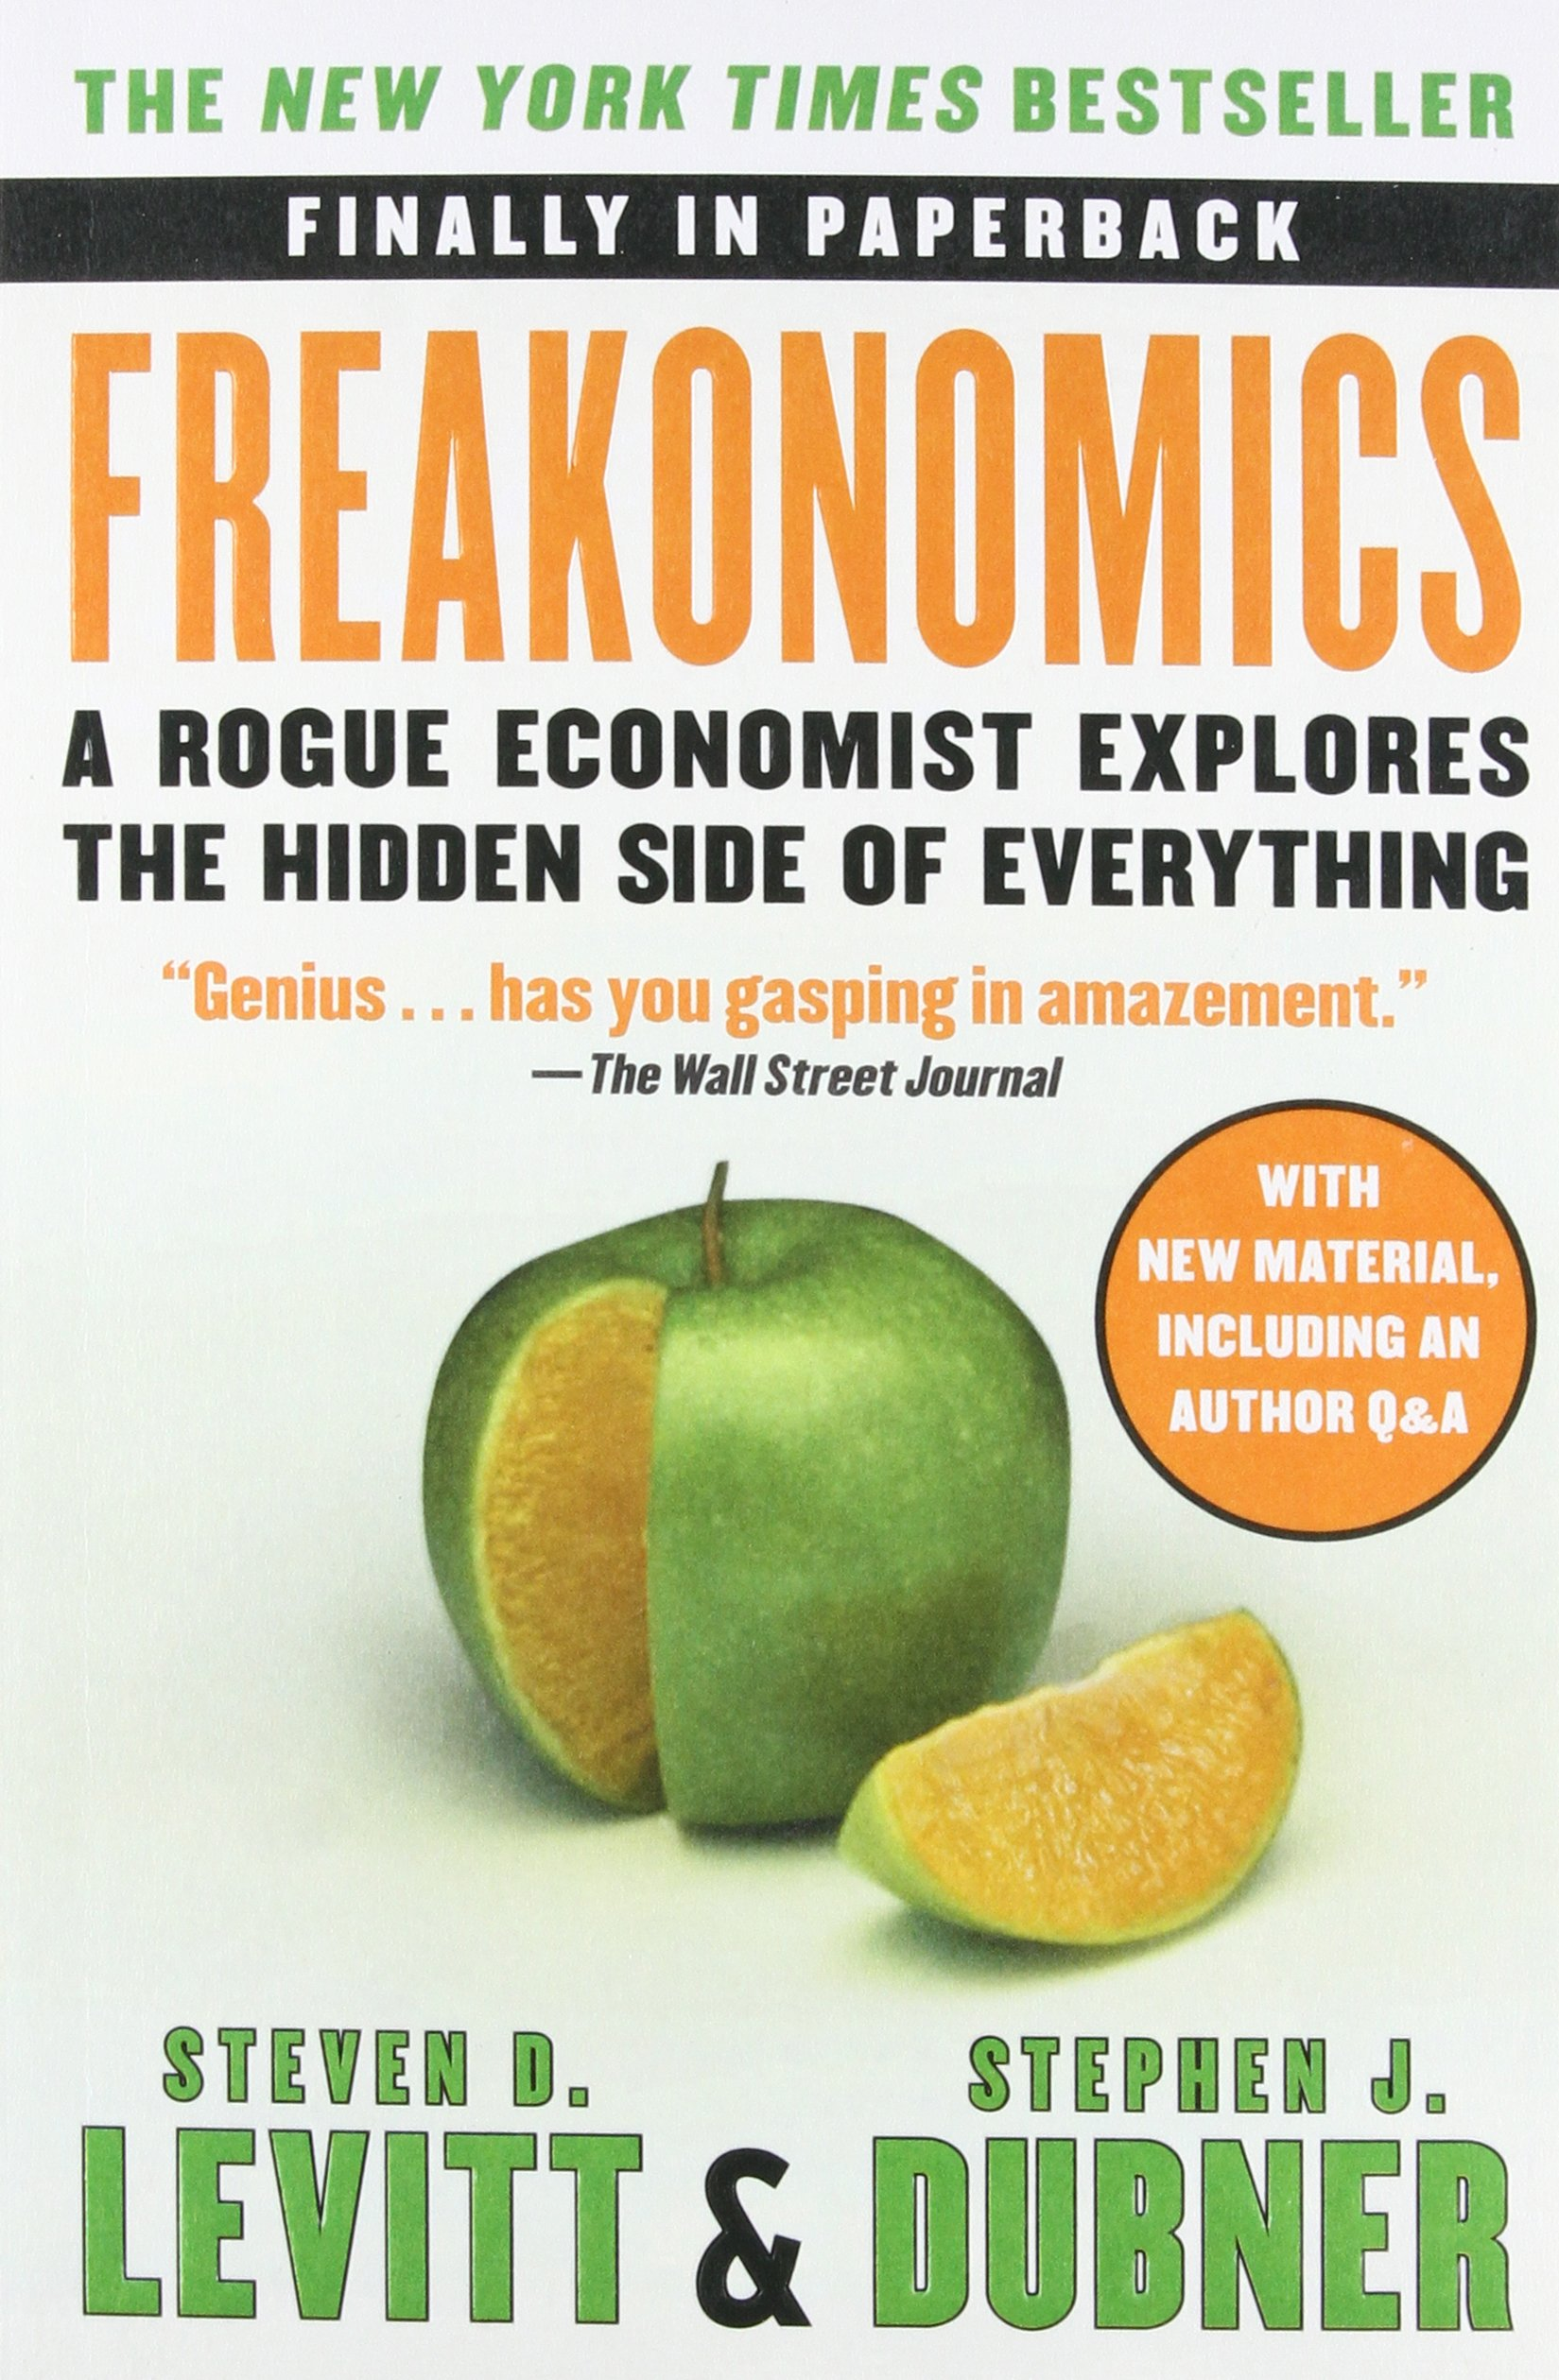 Buy Freakonomics: A Rogue Economist Explores the Hidden Side of Everything  Book Online at Low Prices in India | Freakonomics: A Rogue Economist  Explores the ...